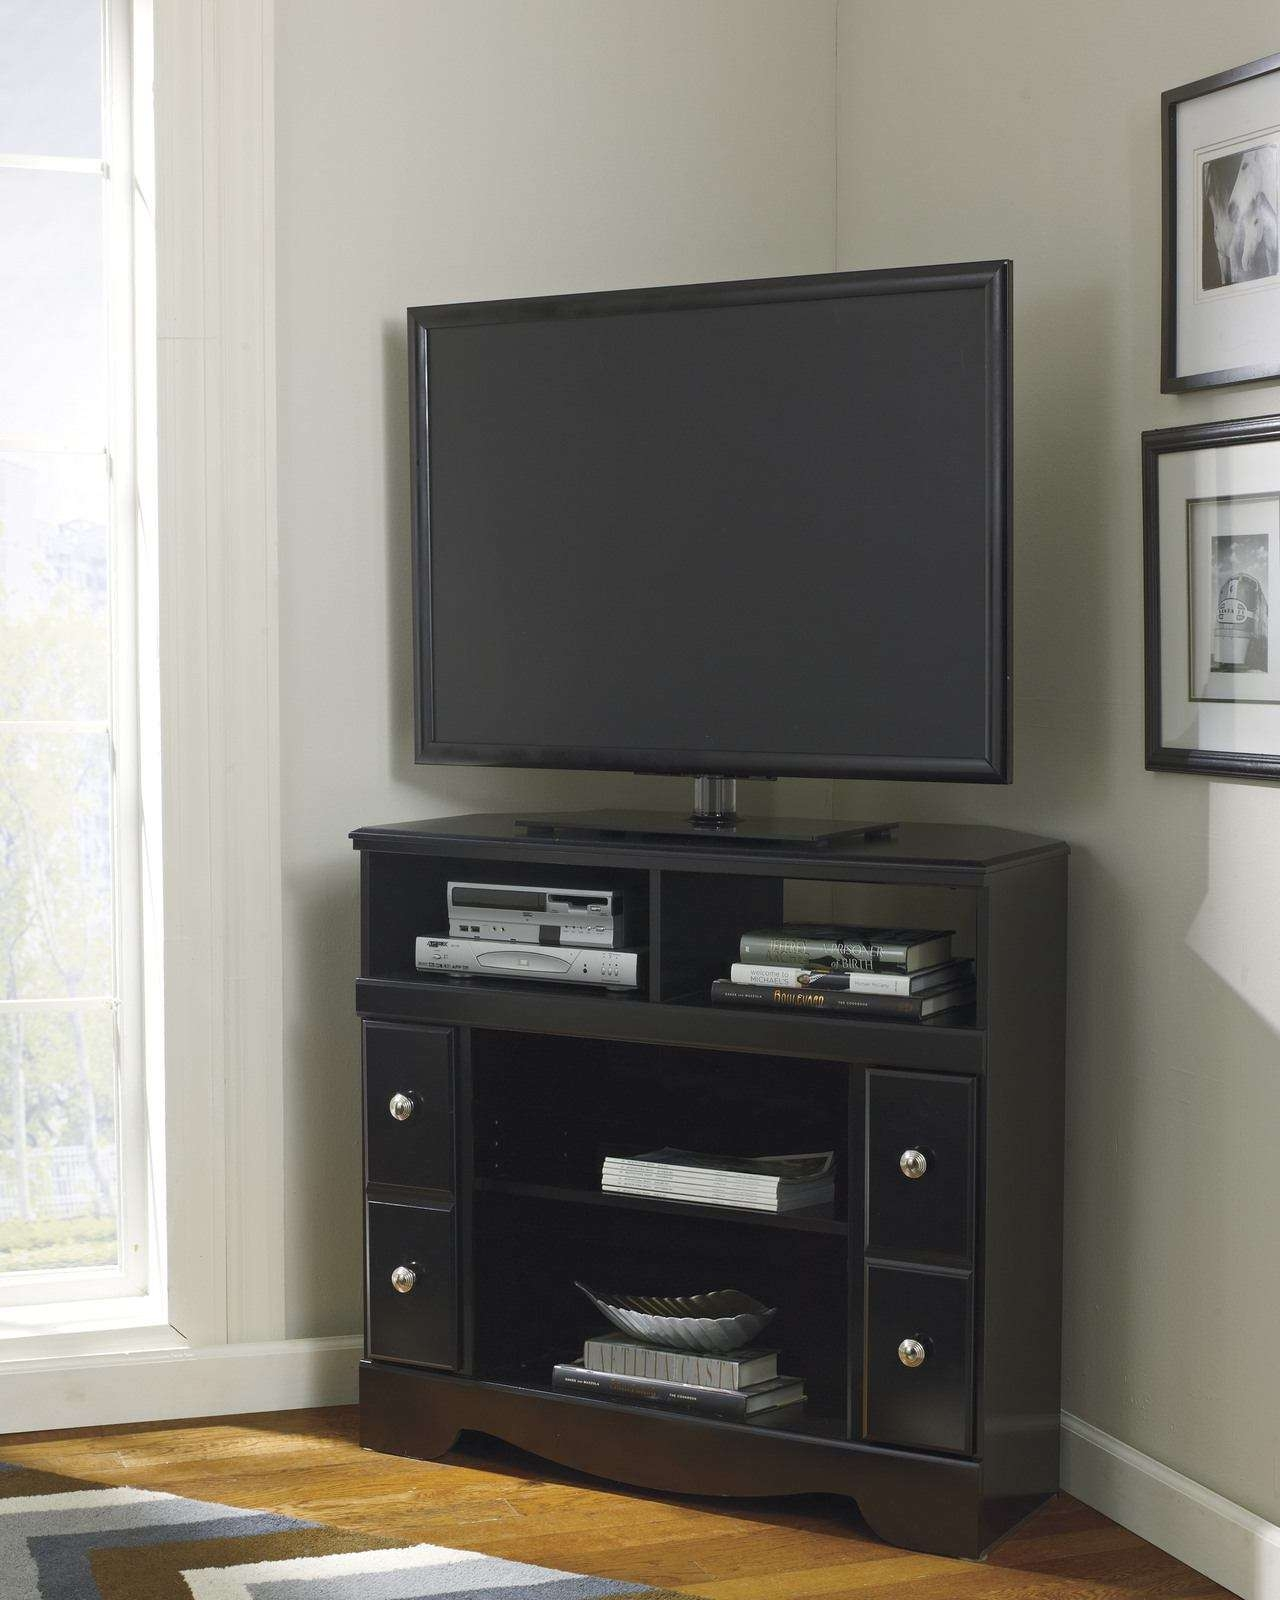 Corner Tv Stand With Fireplace Option In Black W271 12 Throughout Corner Tv Stands (View 3 of 15)